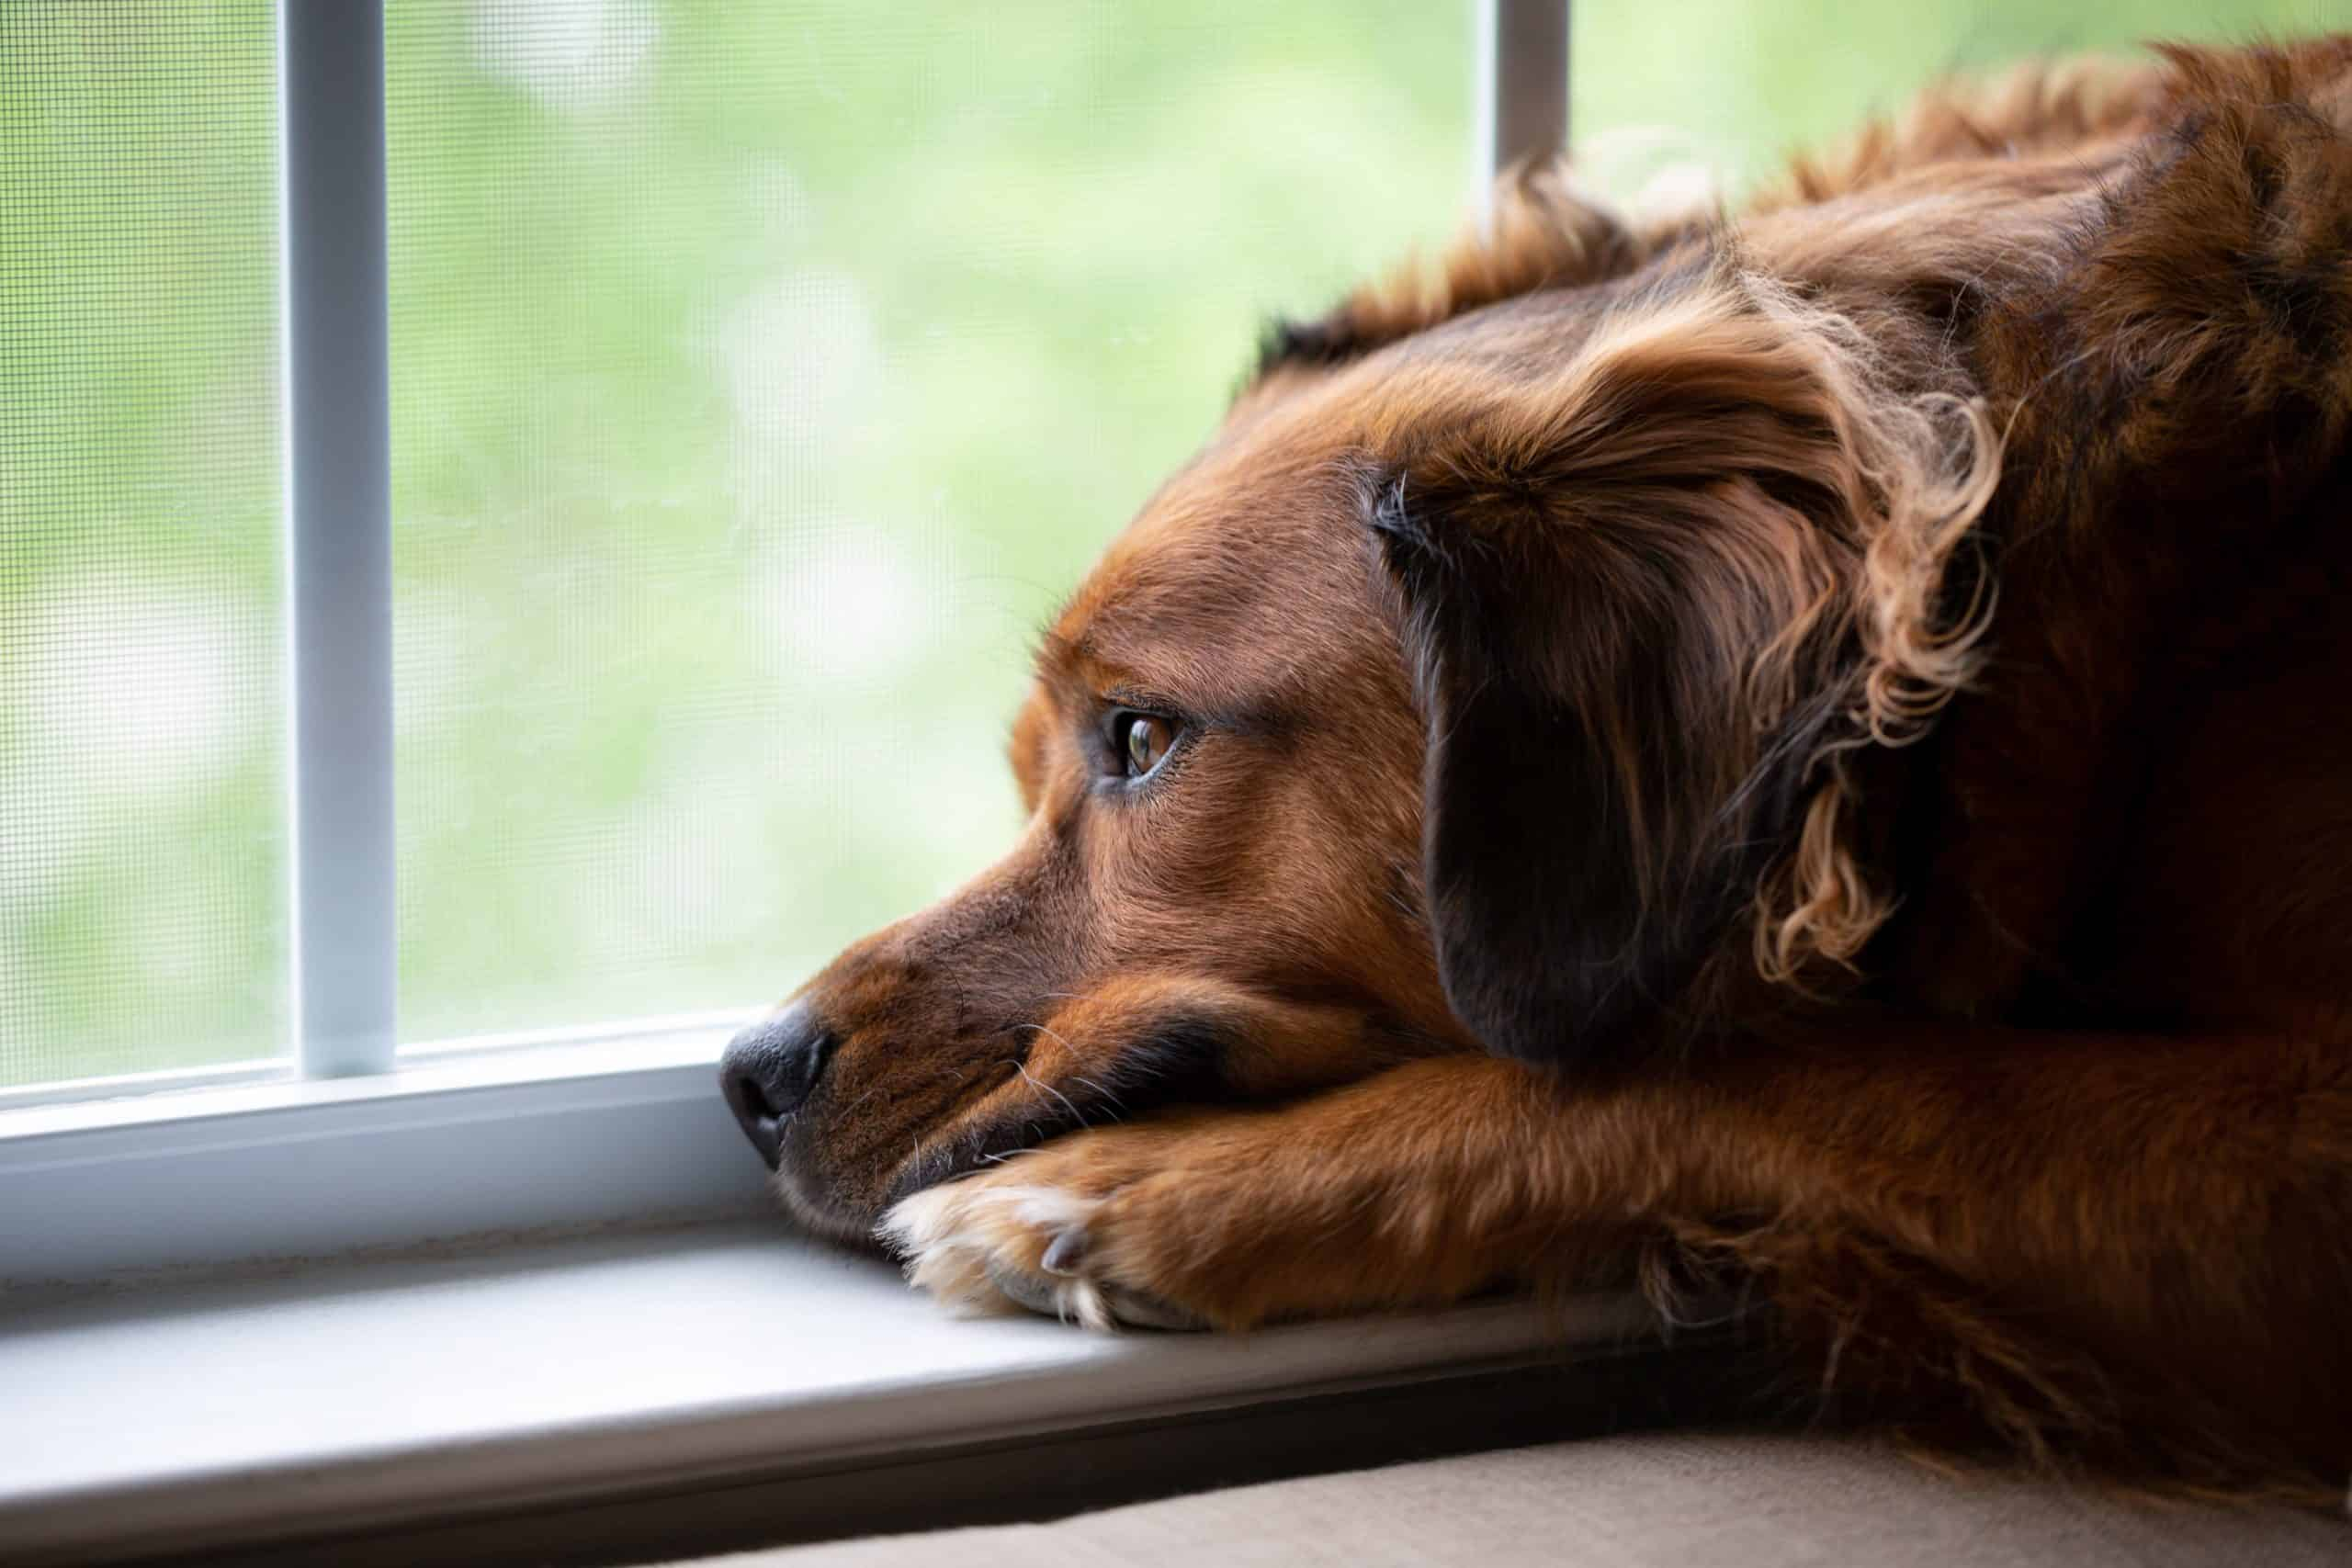 Depressed dog looks out window. Give dogs CBD oil for depression to help relax an agitated dog, ease severe fears, comfort a dog with separation trauma, or mitigate pain.